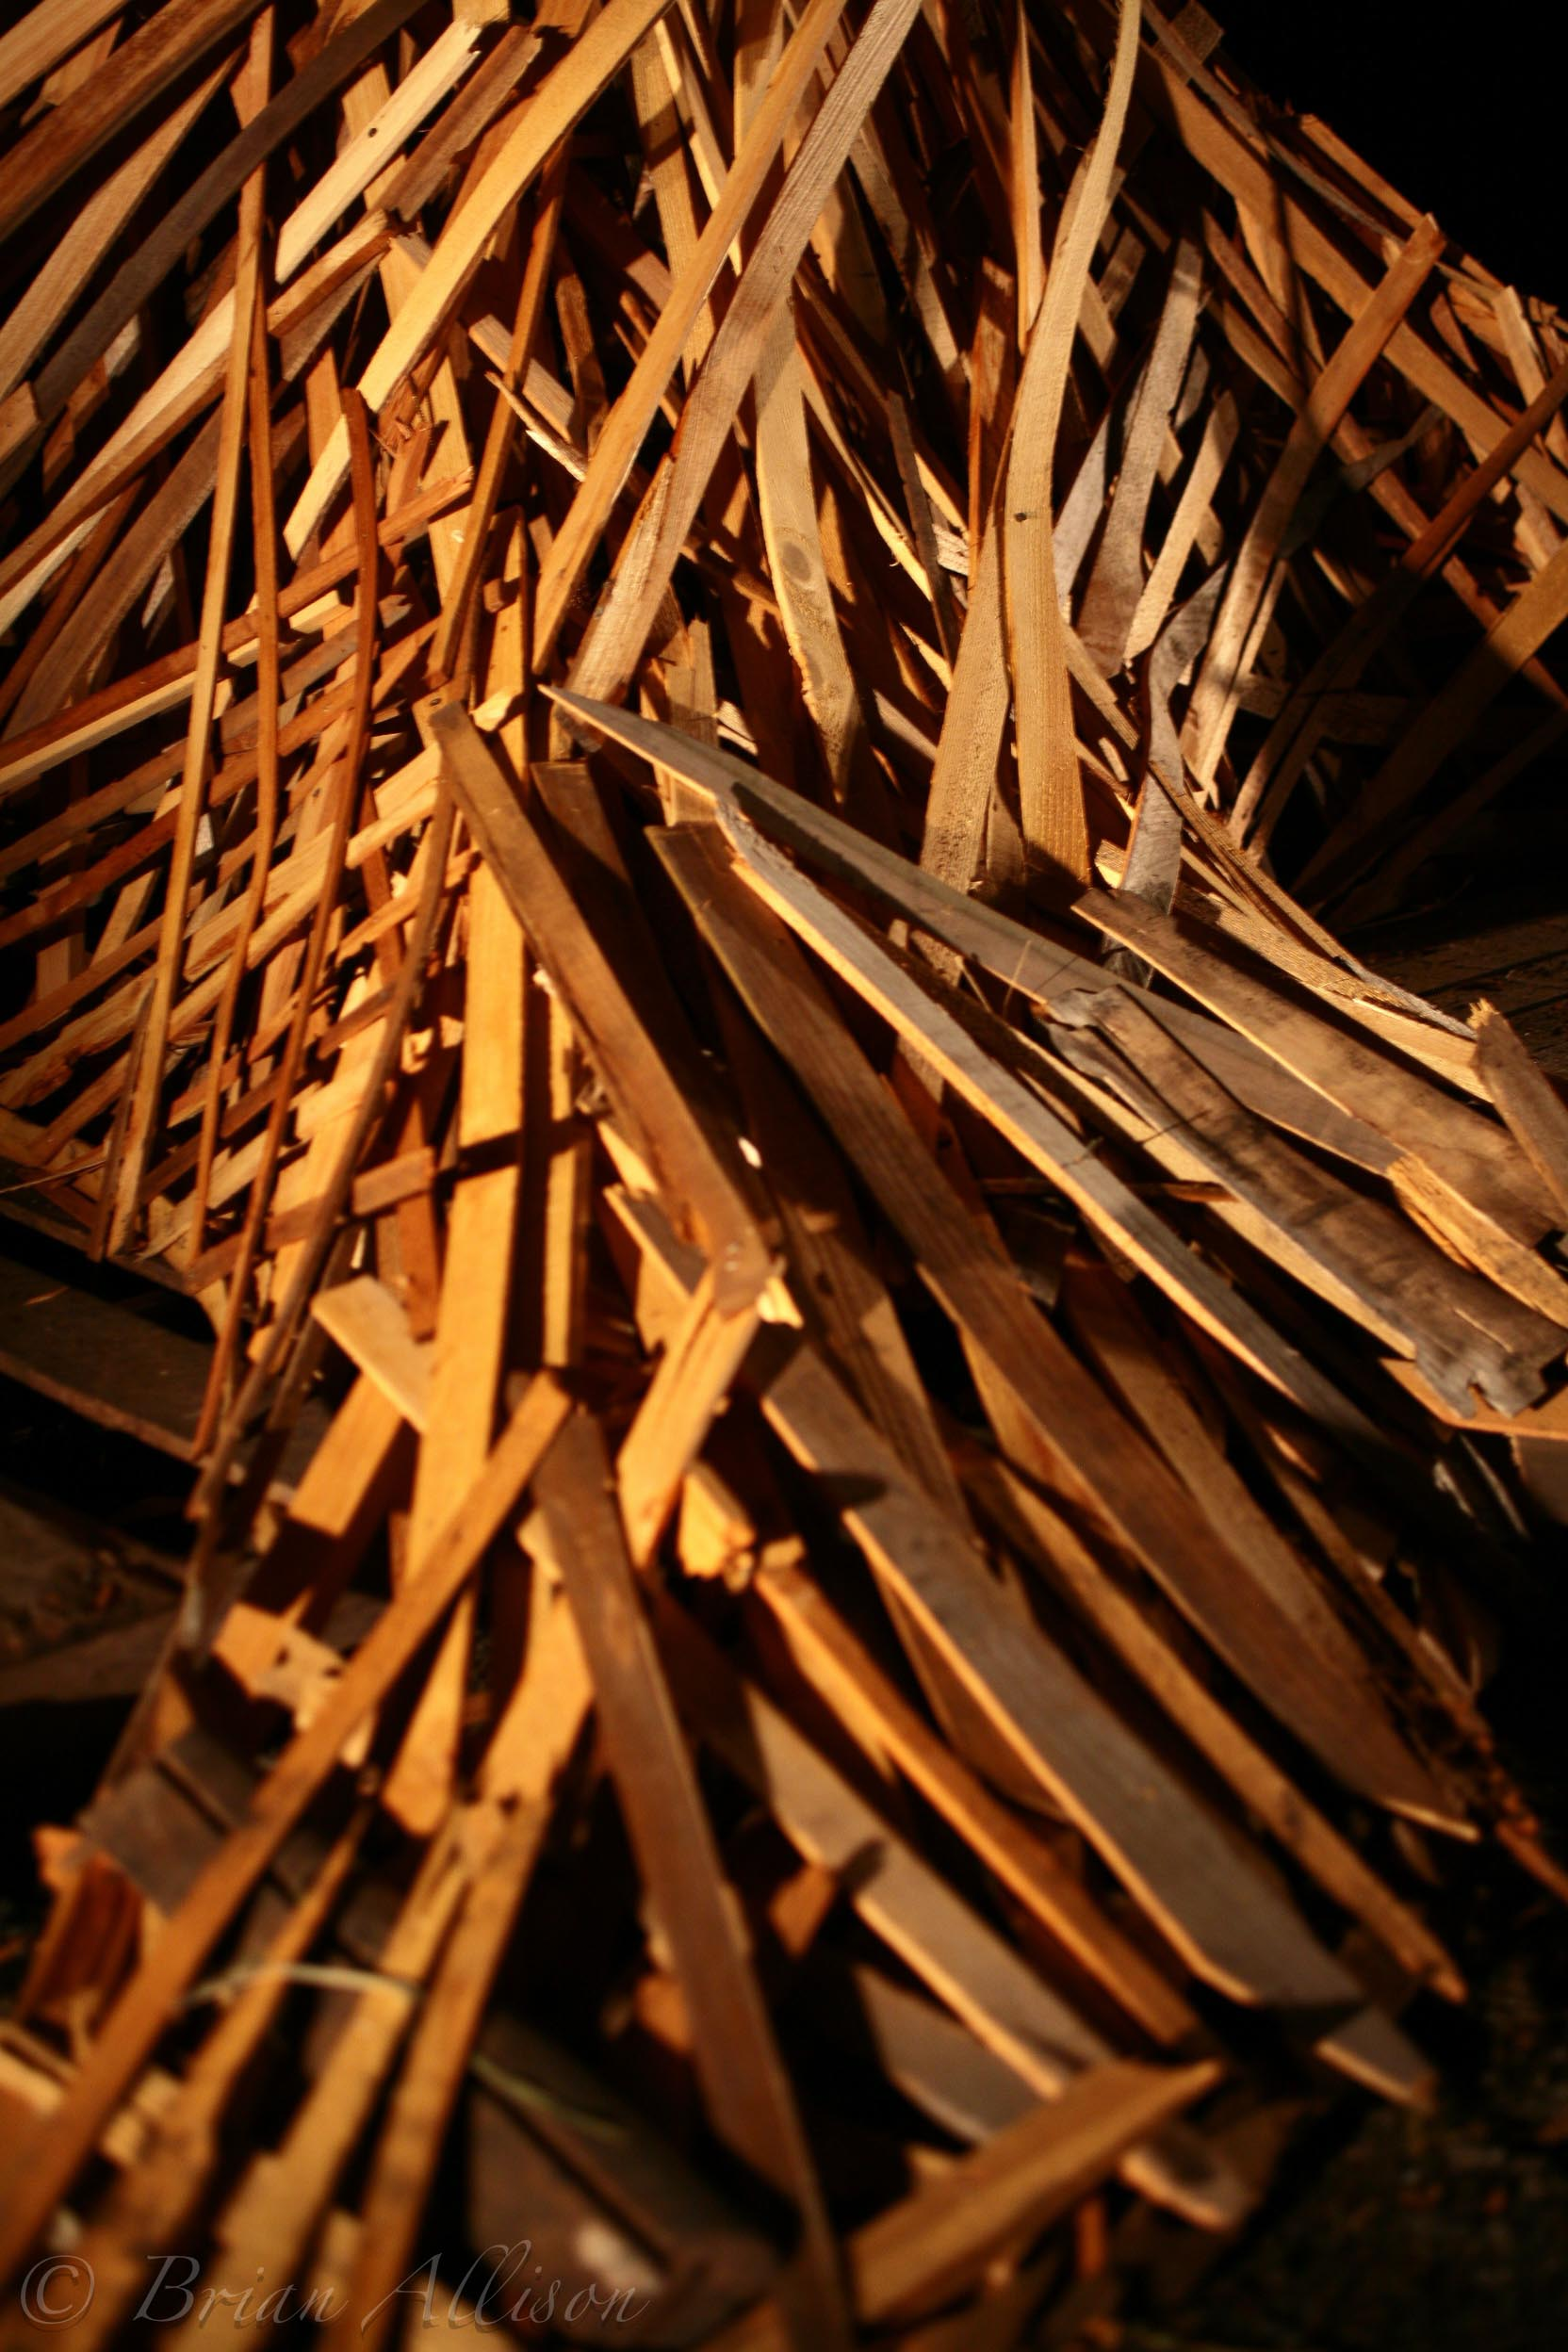 Fire Sculpture Close up View